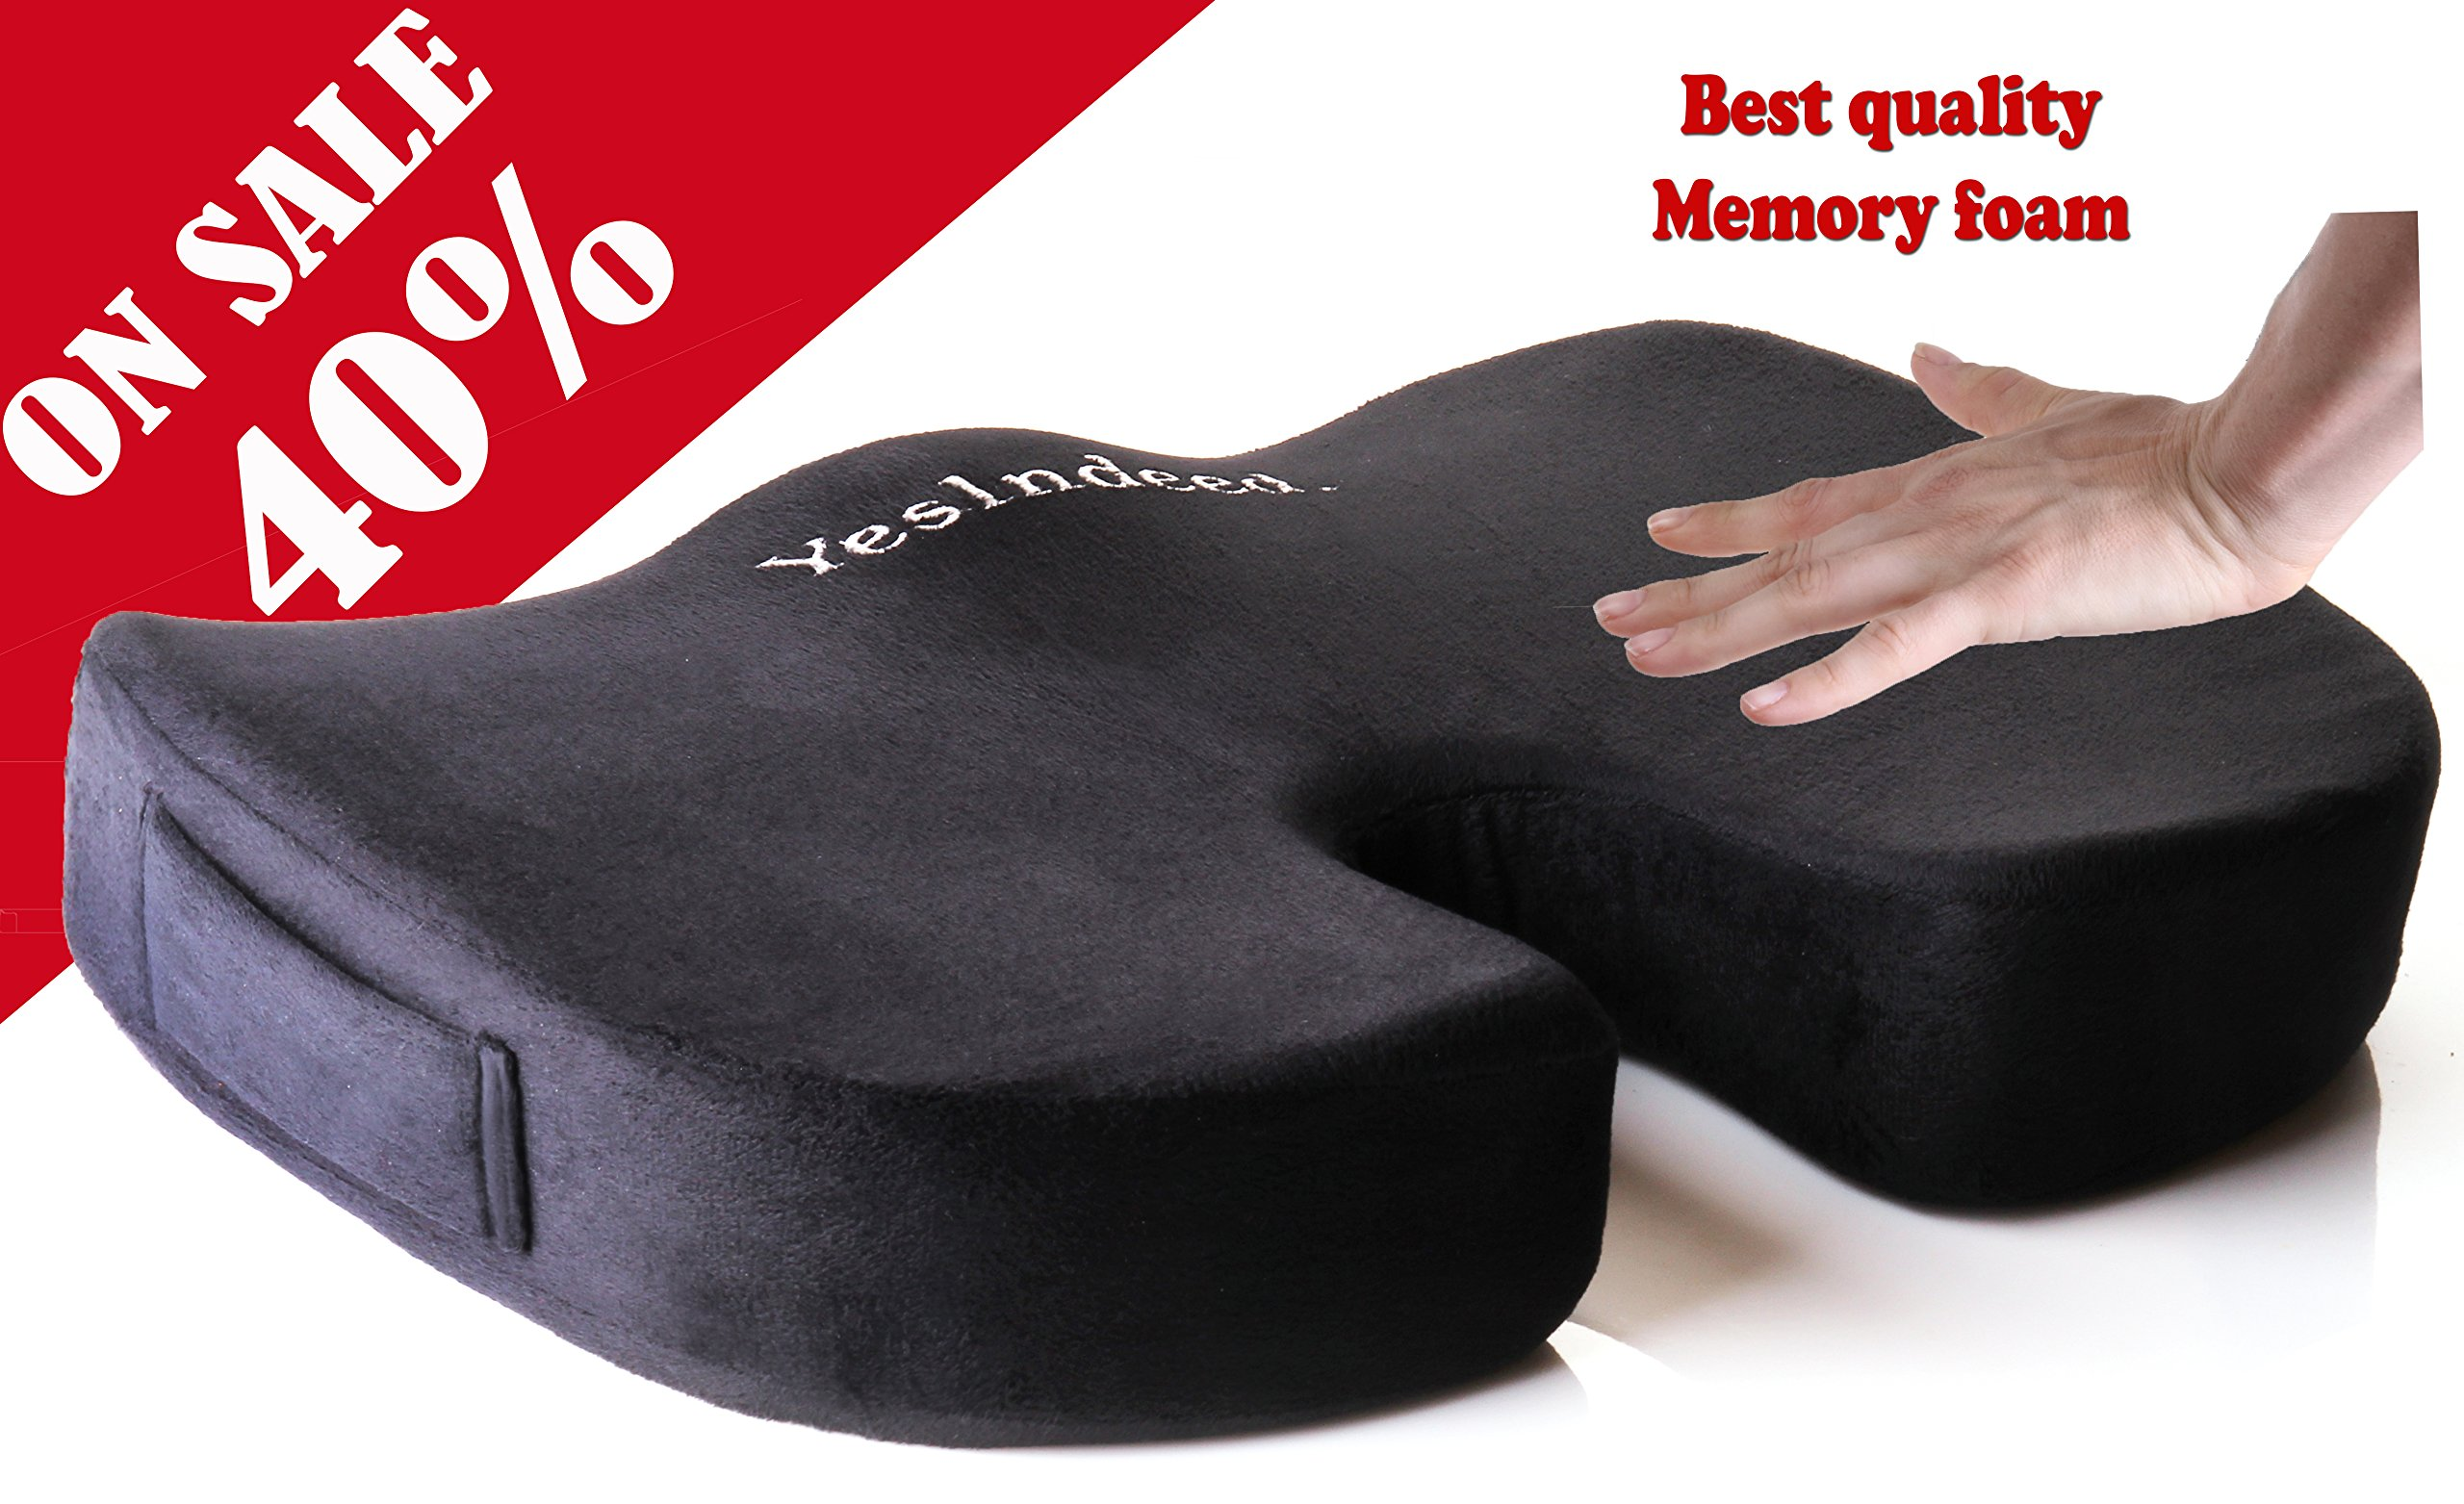 Memory Foam Orthopedic Coccyx Pillow – Premium Comfort Seat Cushion for Prolonged Sitting in Office Chair, Car – Support and Relief for Tailbone, Spine, Lumbar, Pregnancy, Hemorrhoids, Back Pain, More